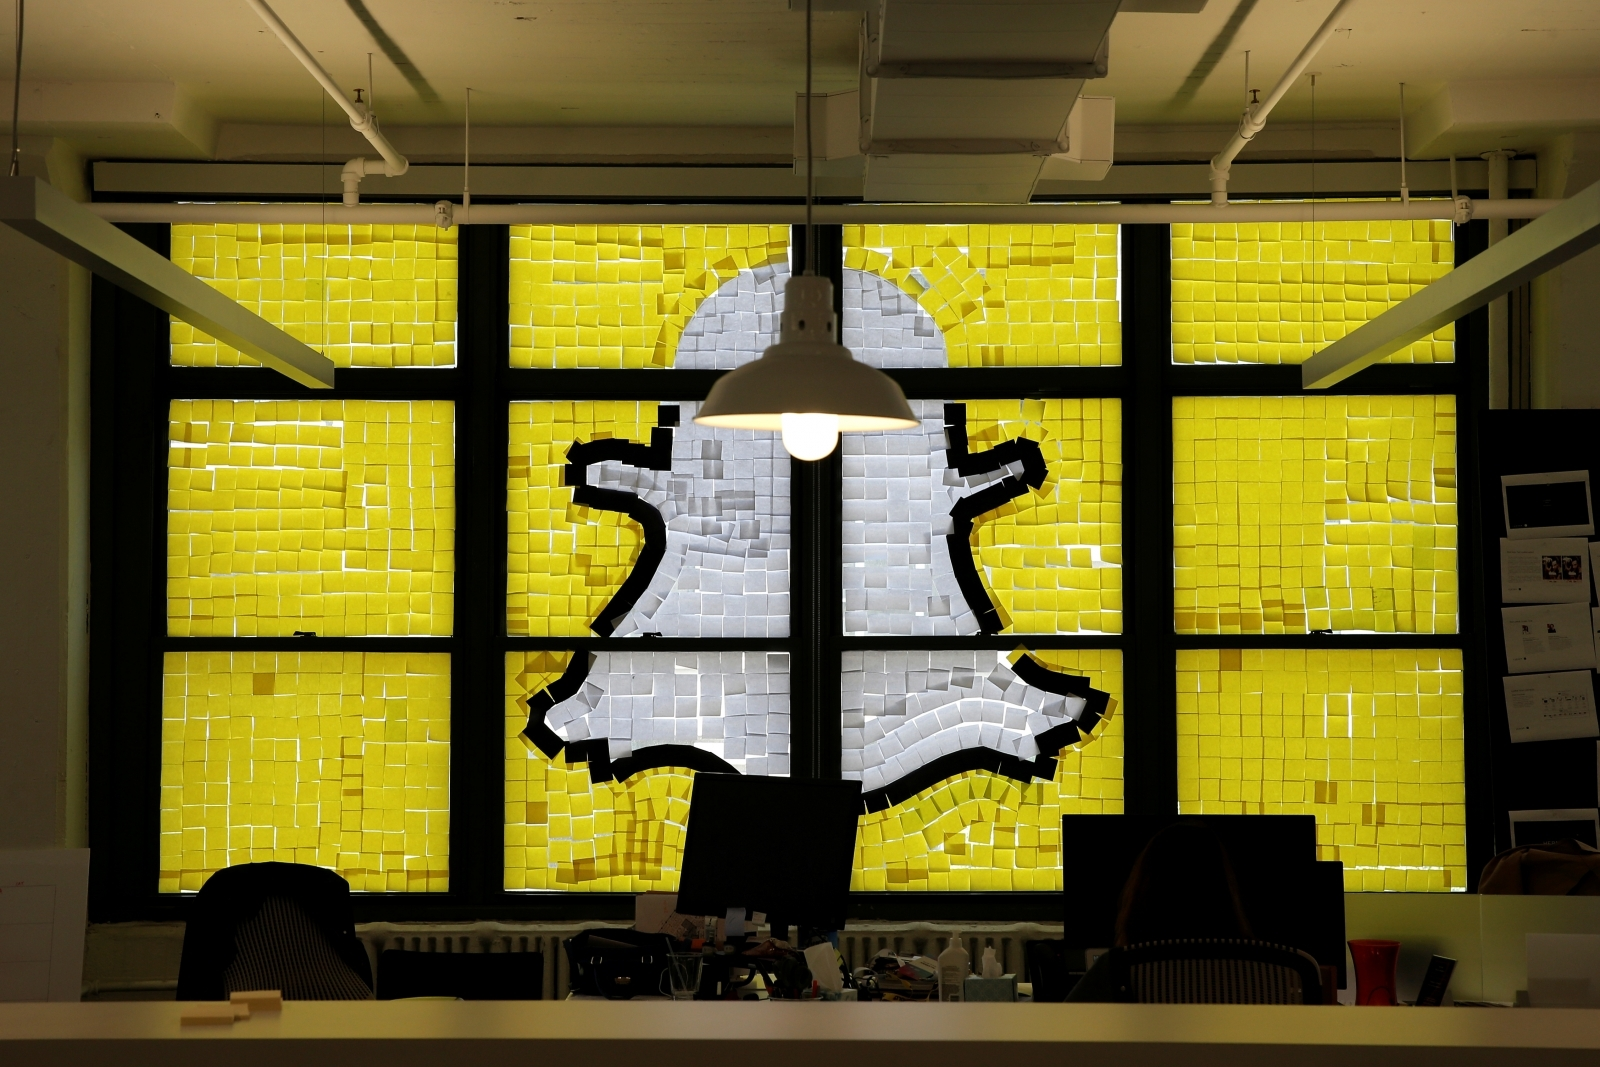 Gulf row: Snapchat ordered to block Al Jazeera from by Saudis